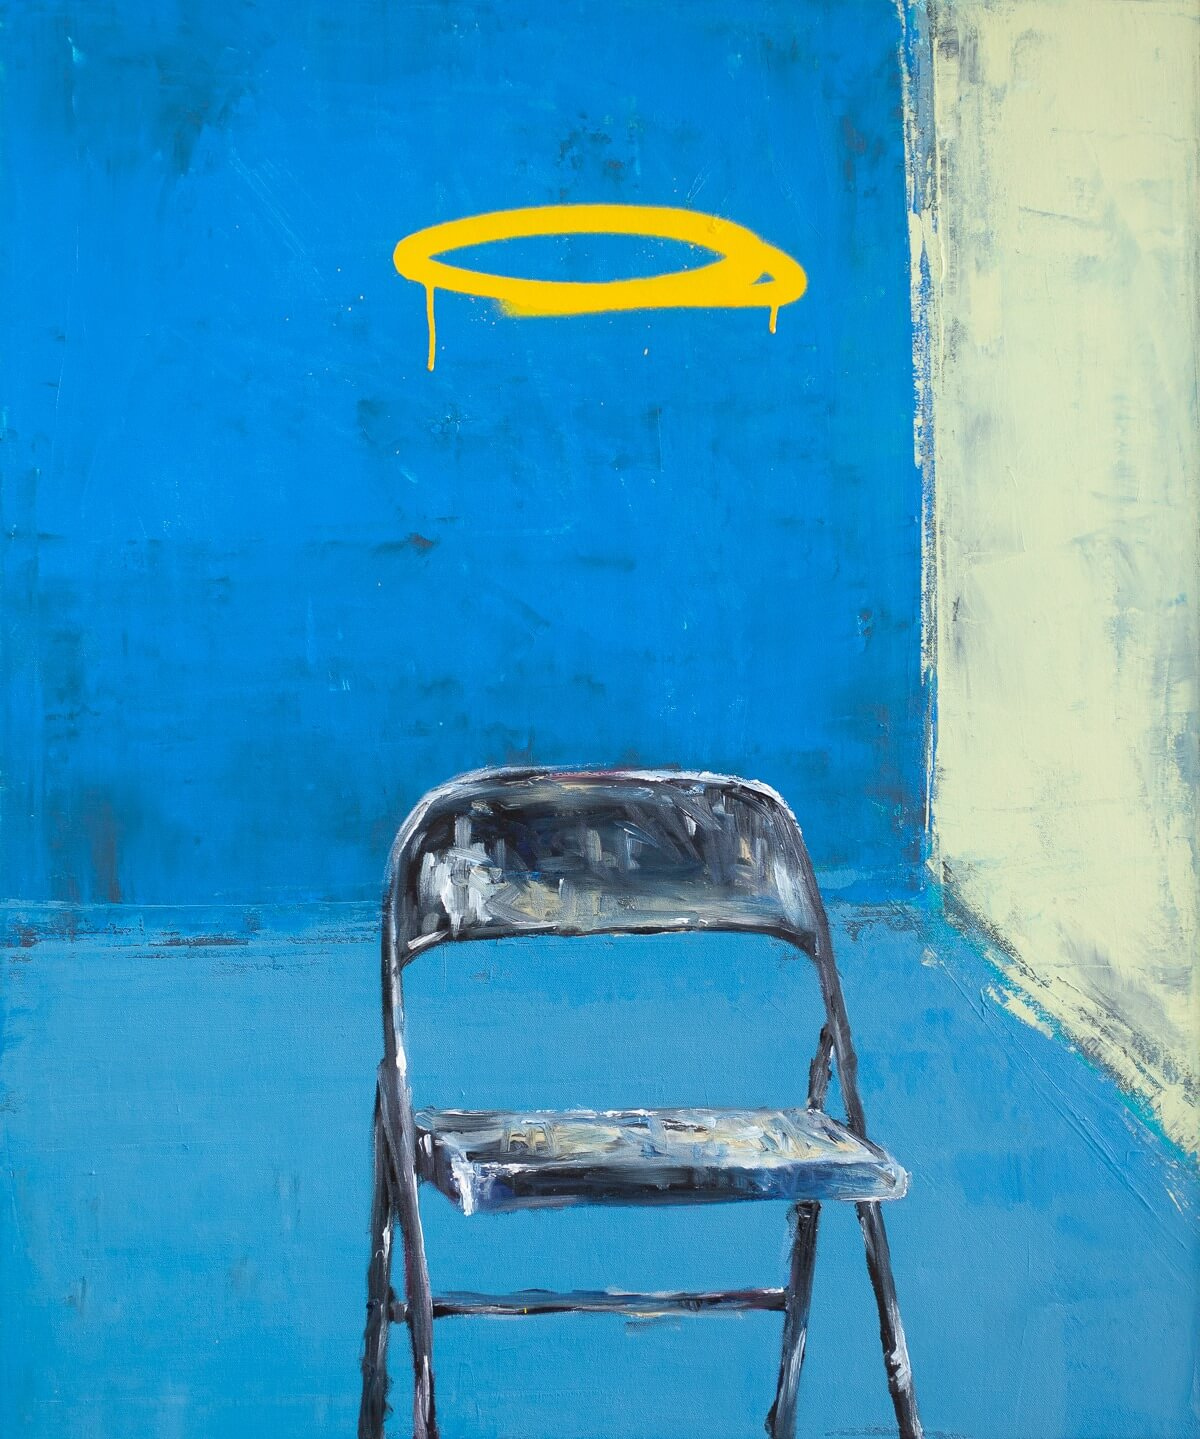 Pat Cantin Artiste Peintre / The loneliness of the chair as it supposed to be